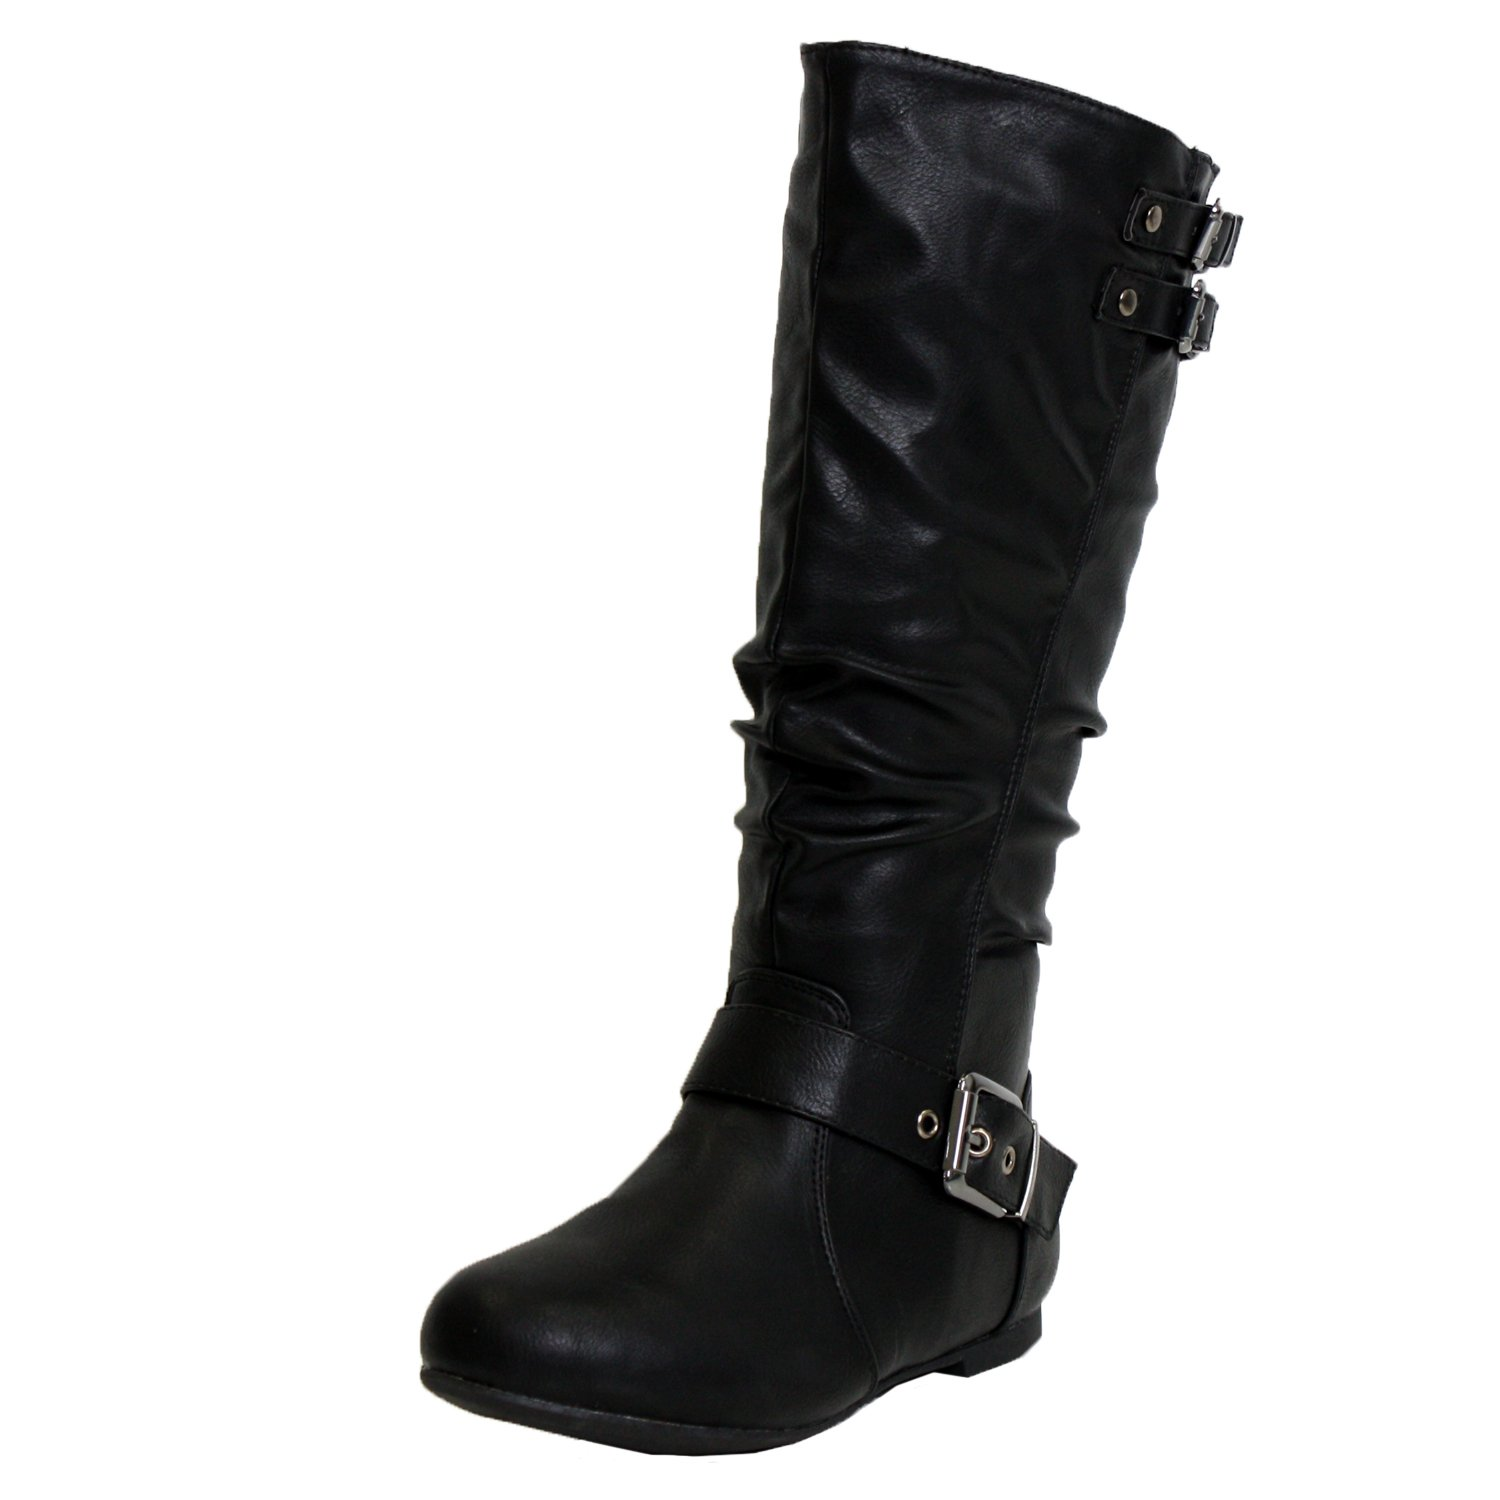 Top Moda Night-76 Women's Slouched Under Knee High Flat Boots, Black, 8.5